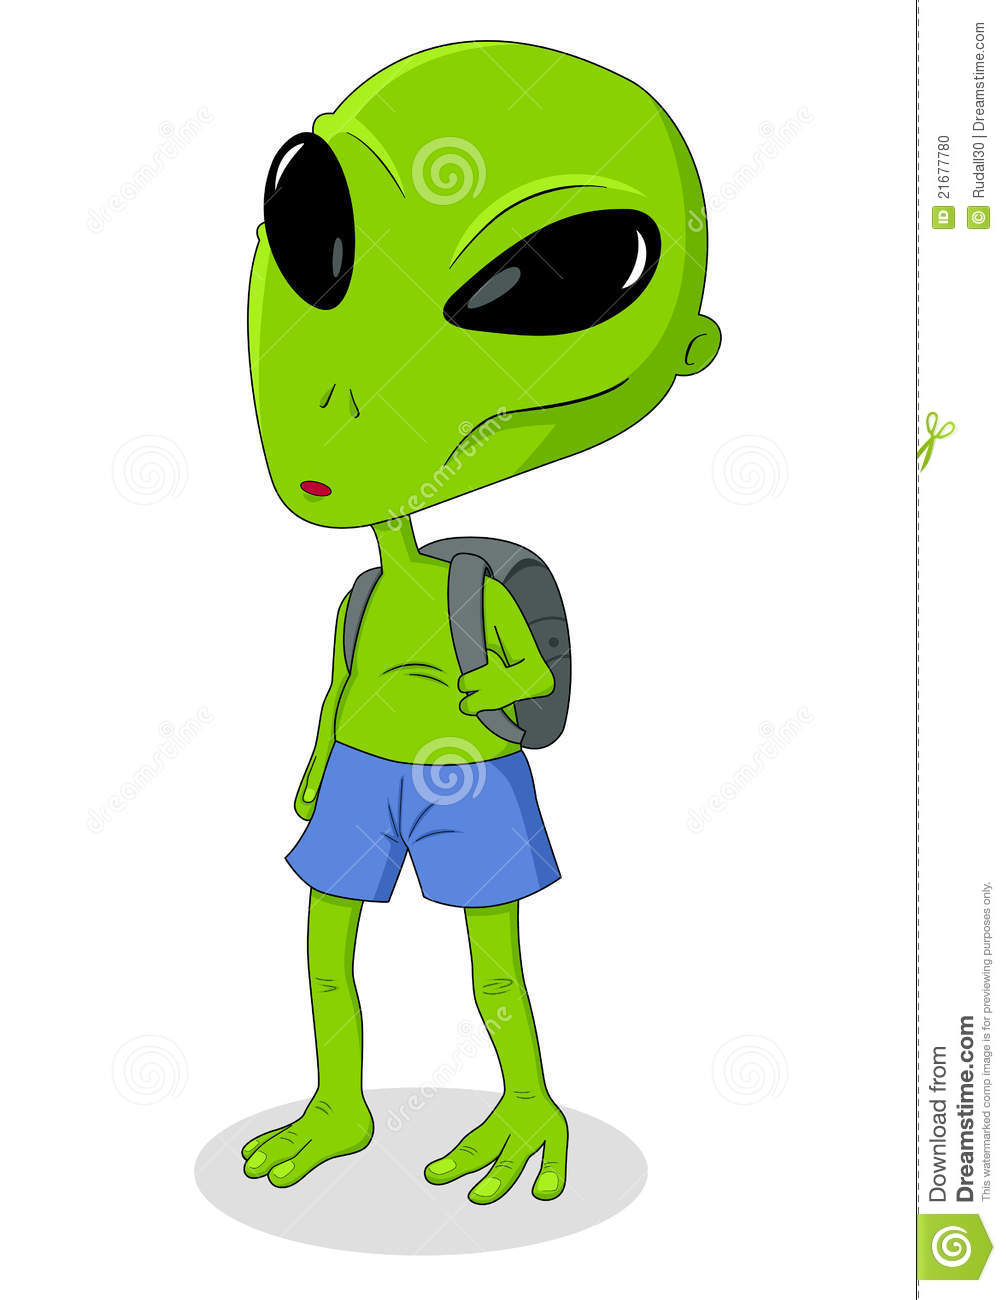 alien goes to school stock photo image 21677780 monster eyes and mouth clipart monster eye clipart black and white